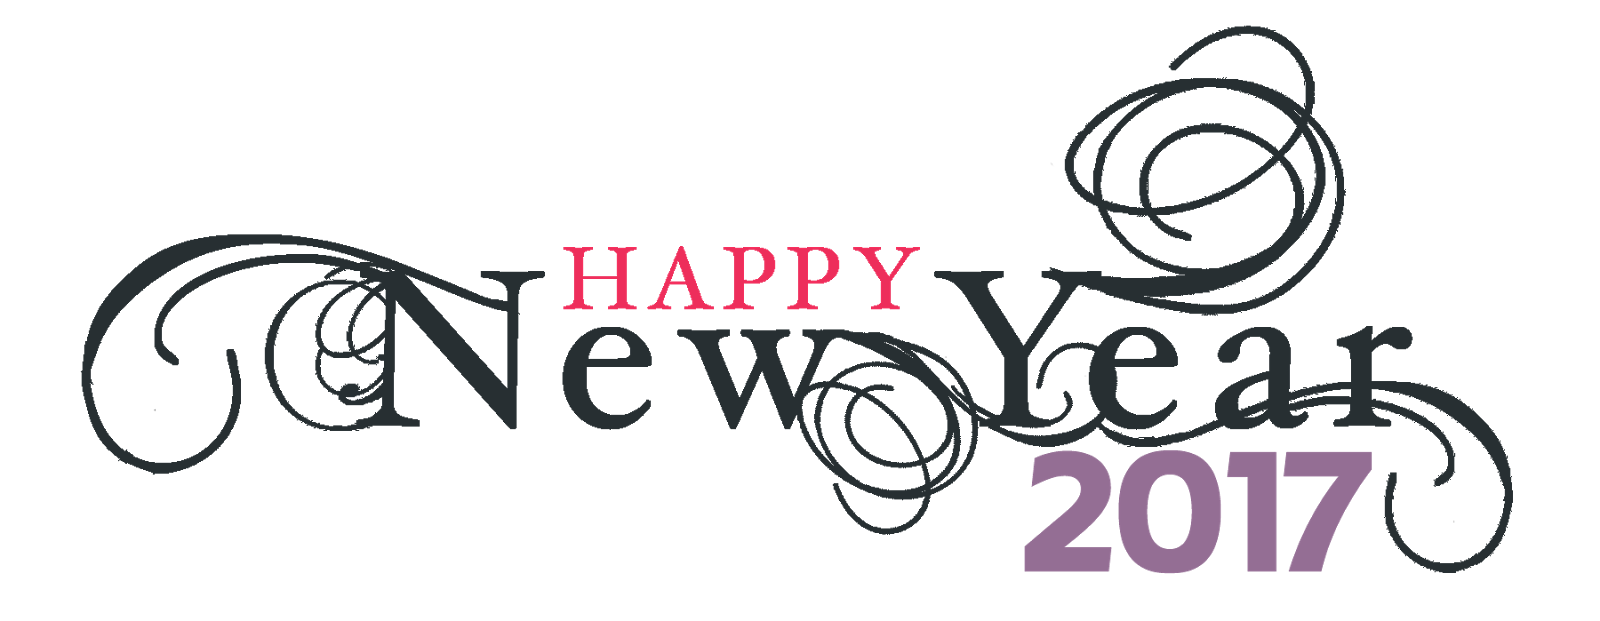 Happy 2017 png. Index of wp content